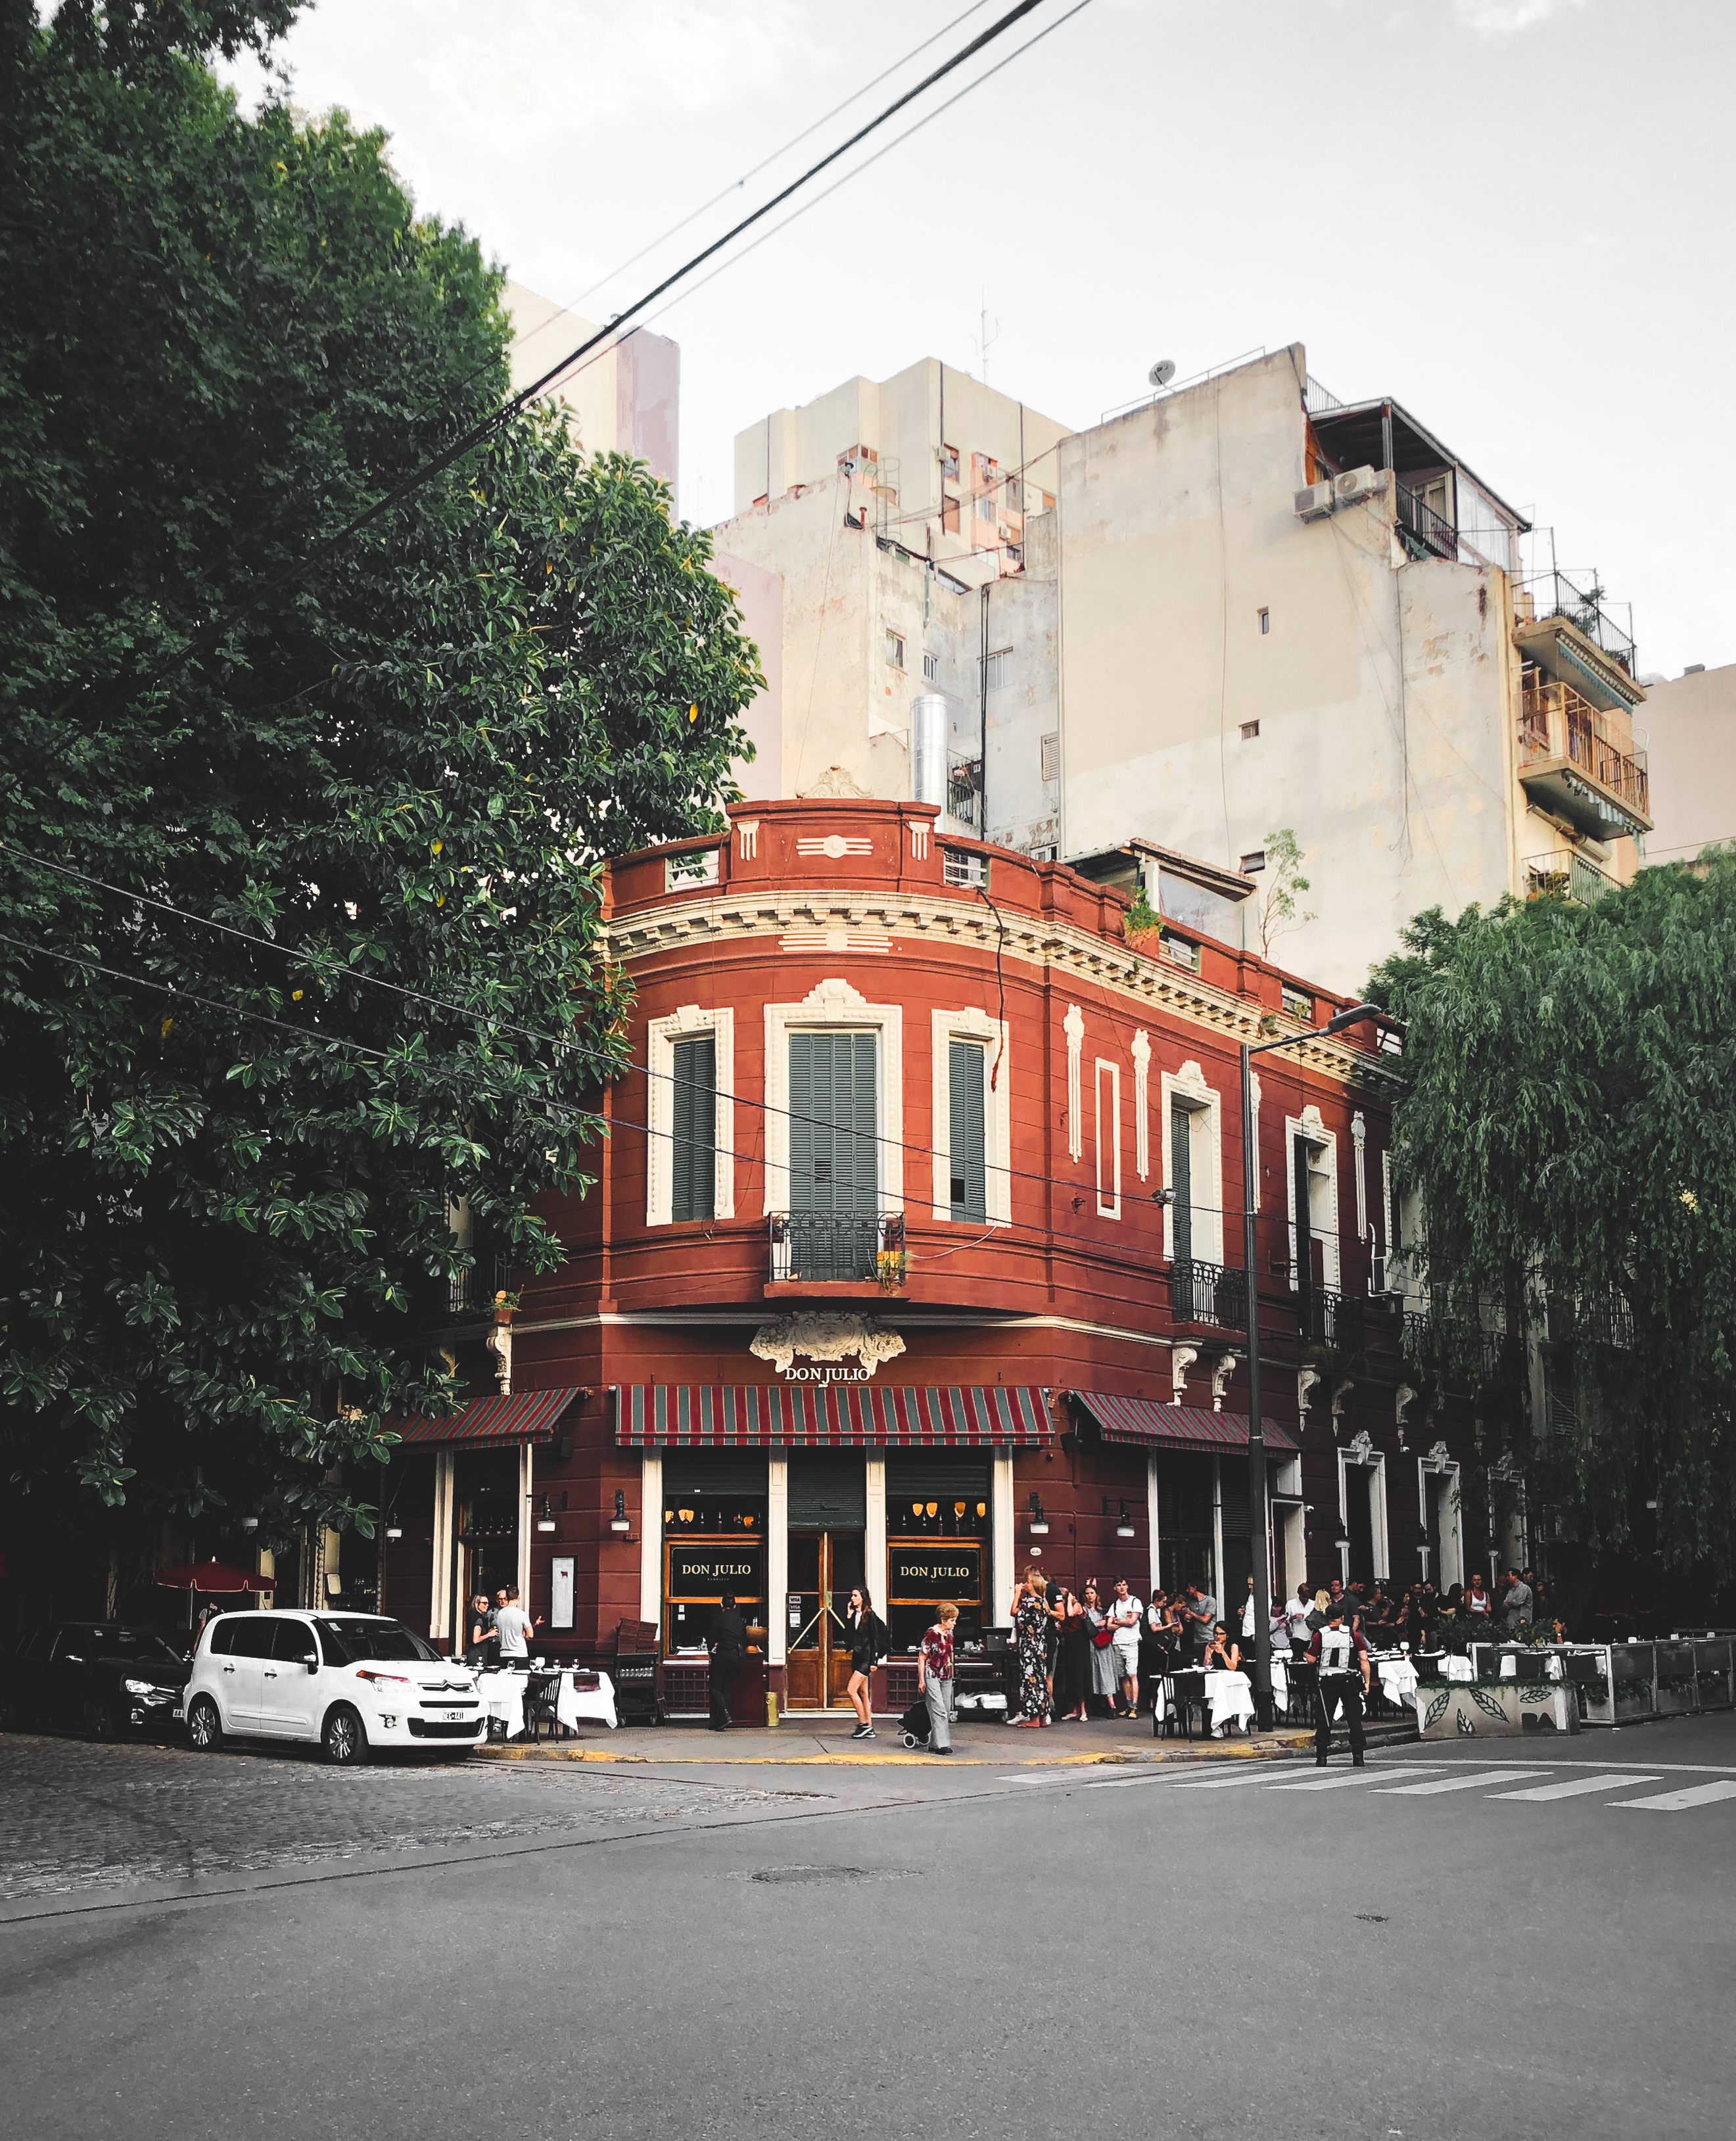 The corner of a red brick building two stories high flanked by tree-lined streets